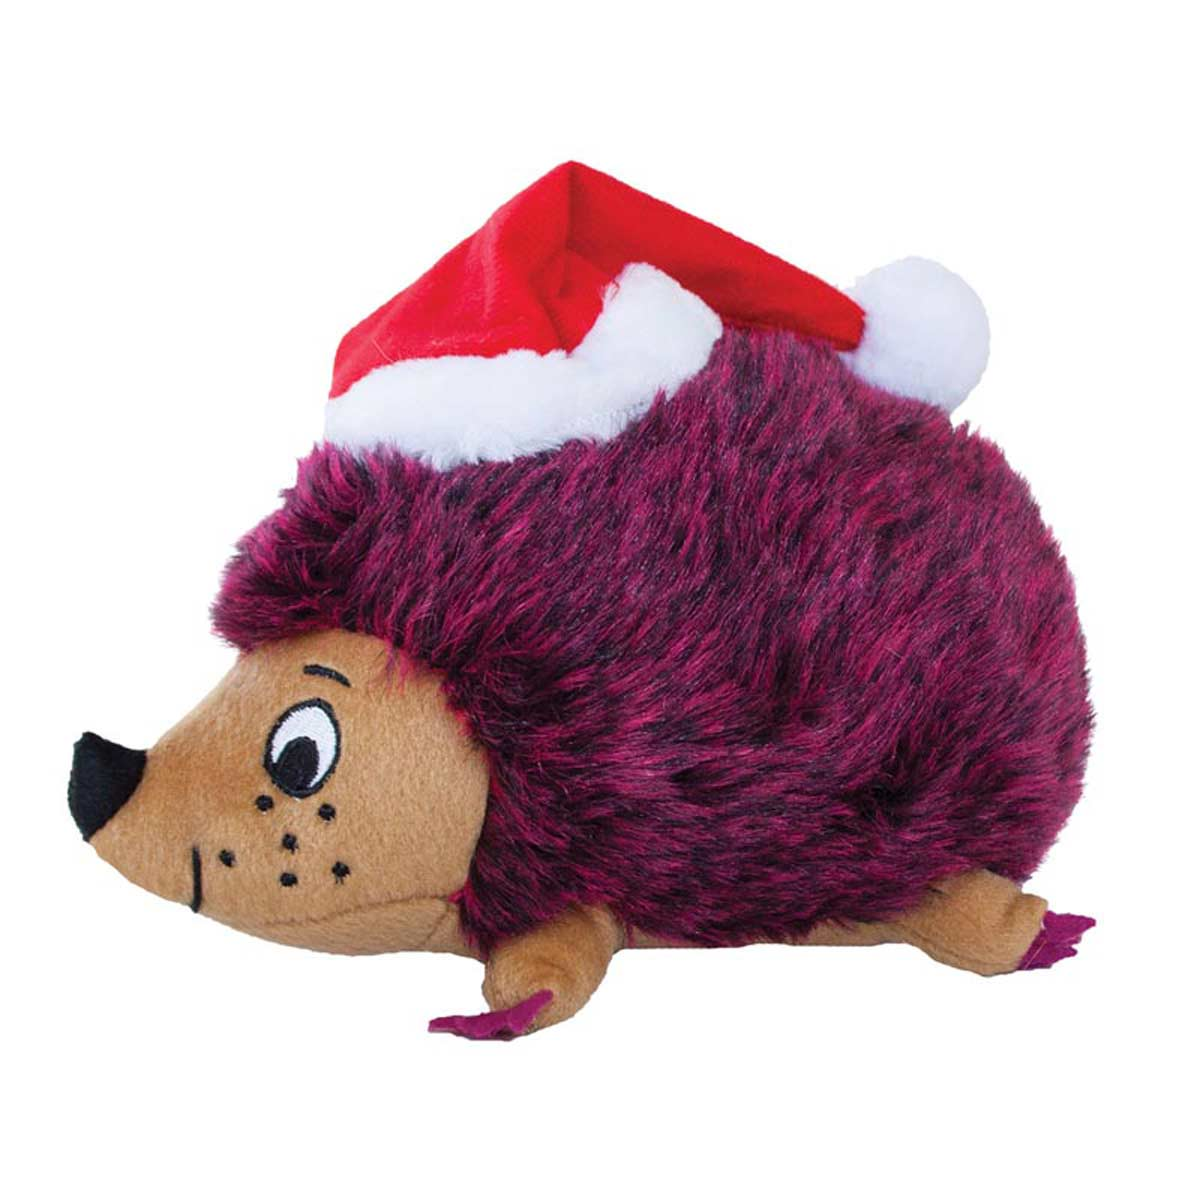 Outward Hound Medium Red Holiday Heggie Stuffed Dog Toy - Squeaks, Grunts, Rattles